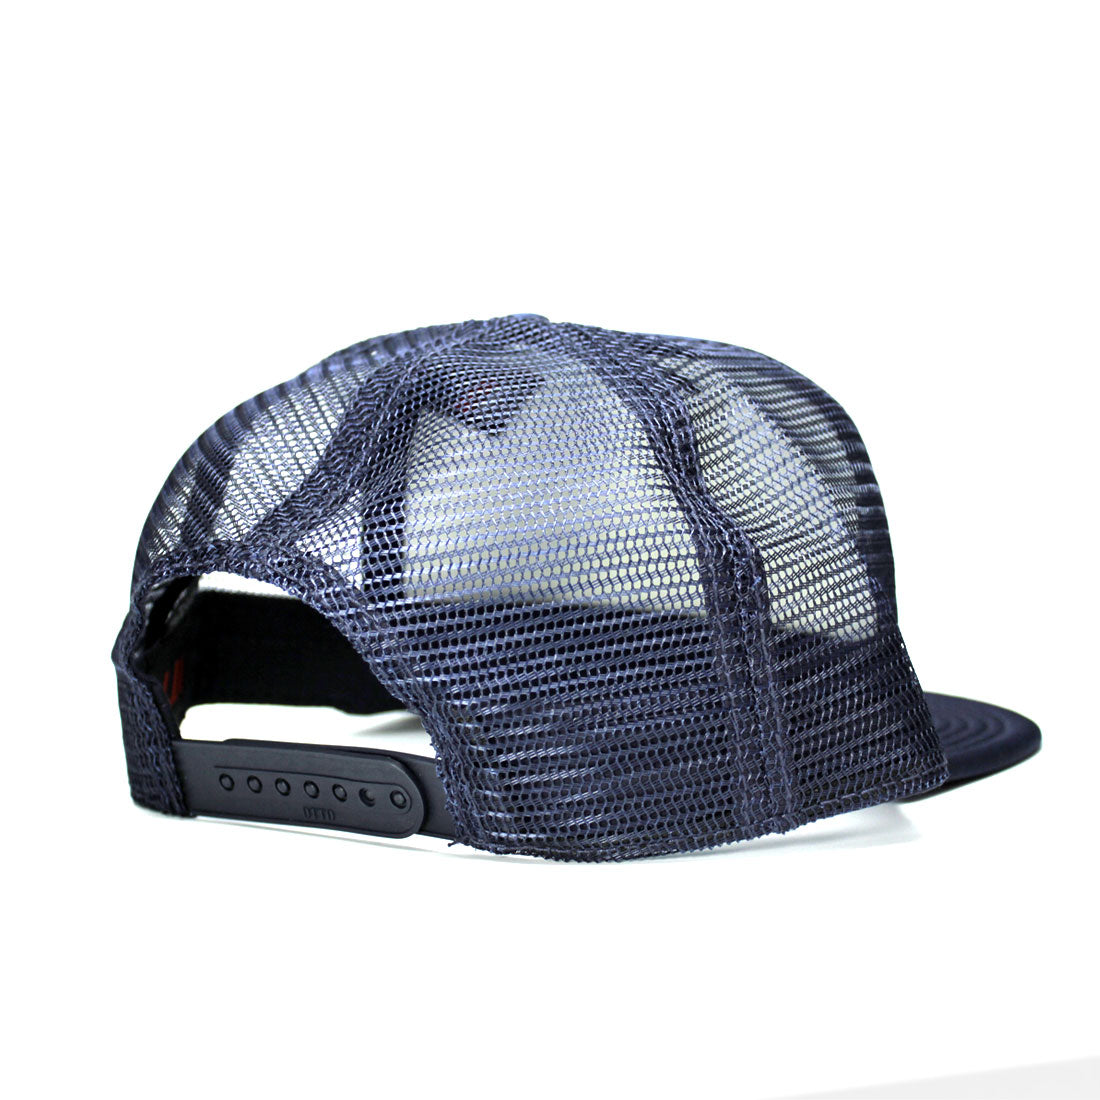 Pub Flat Bill Trucker Hat in Navy